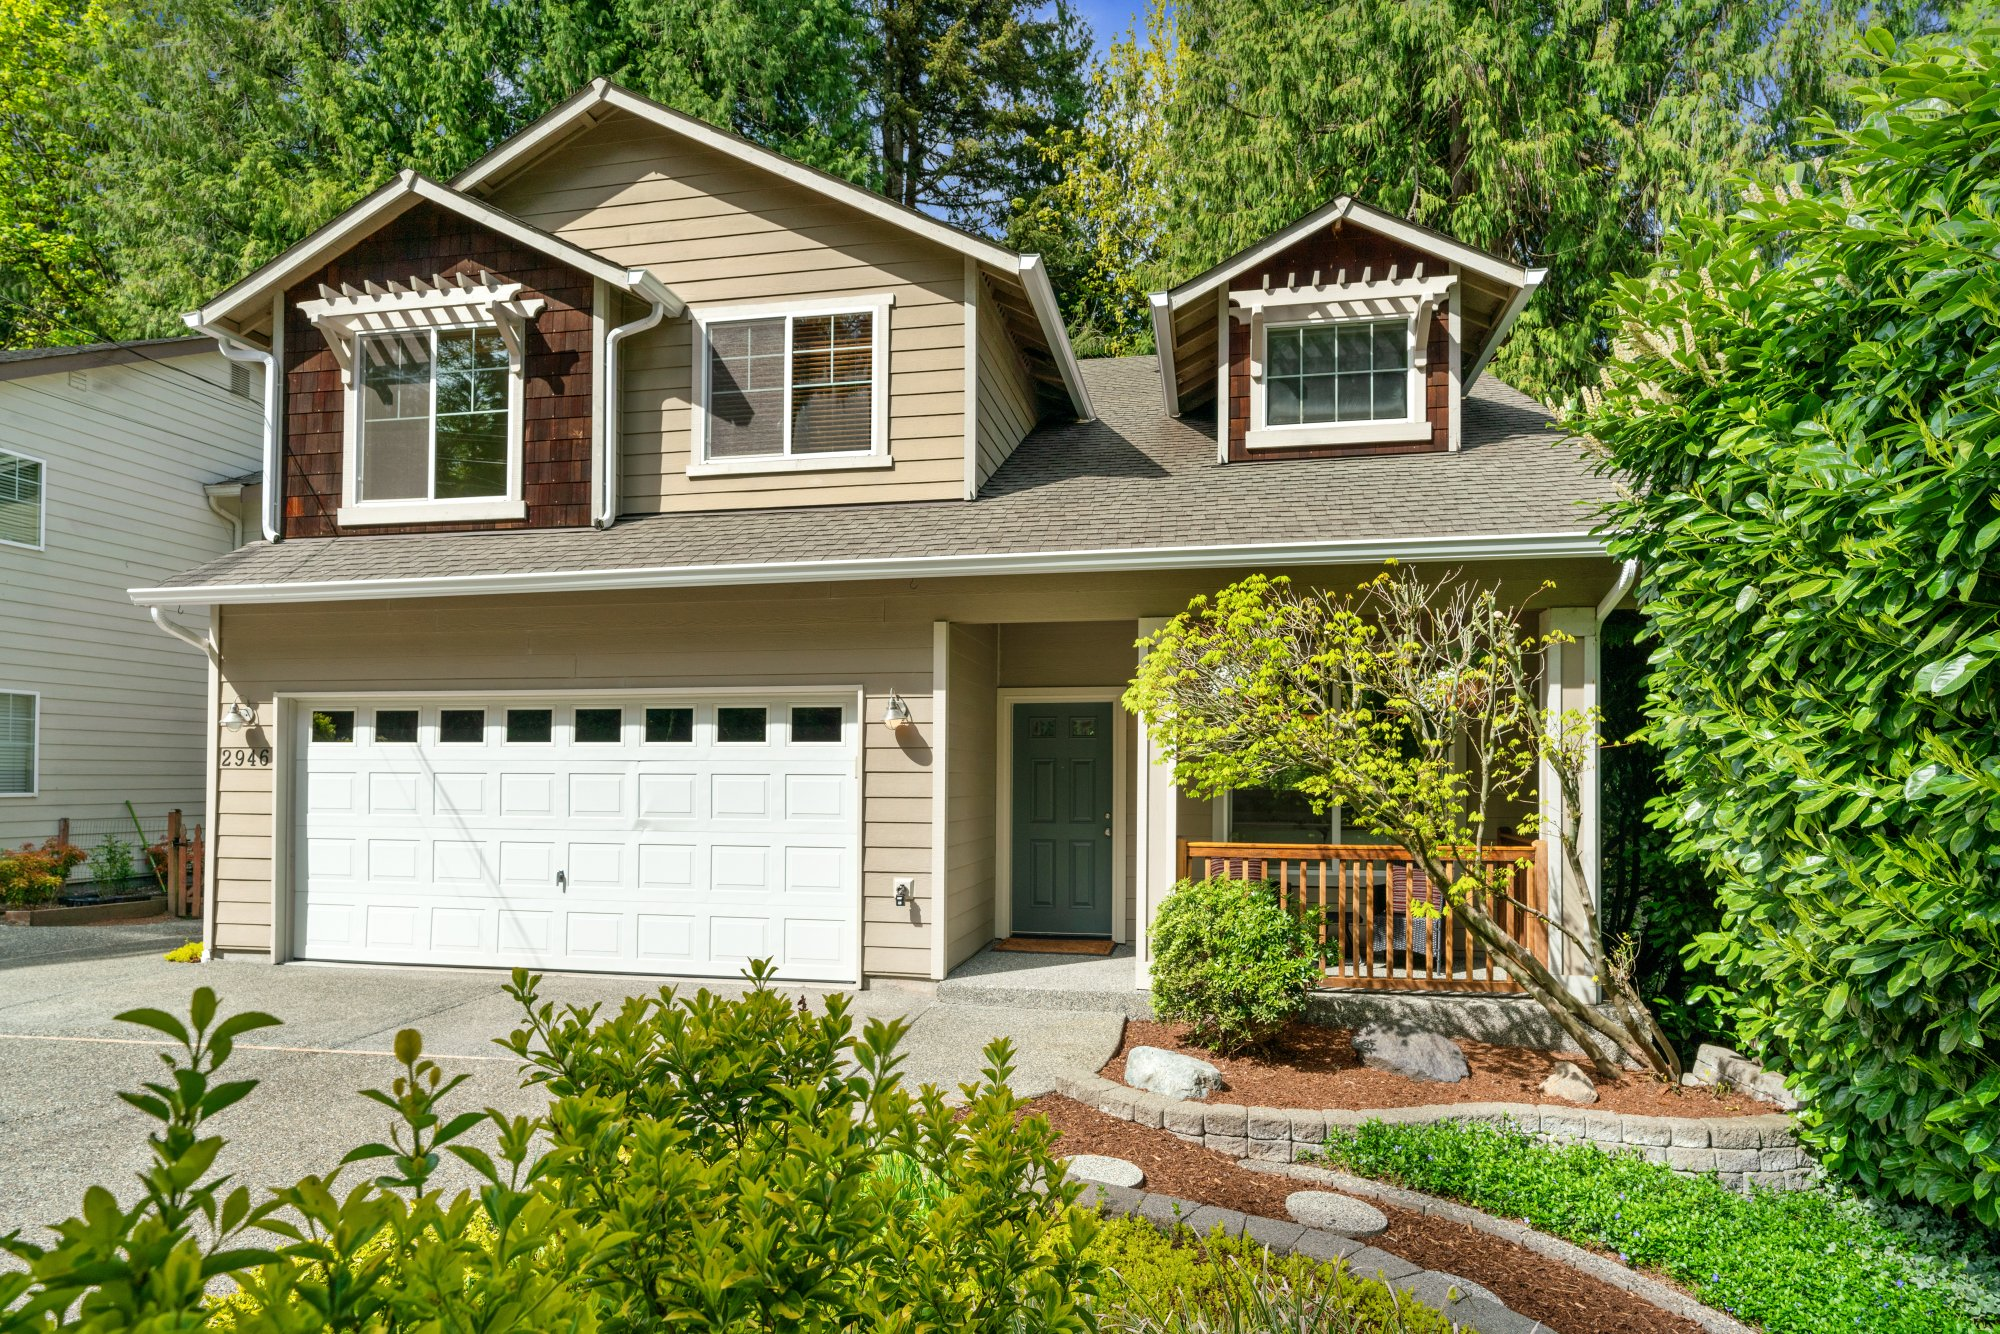 033-2946Northeast178thStreet-LakeForestPark-WA-98155-SMALL